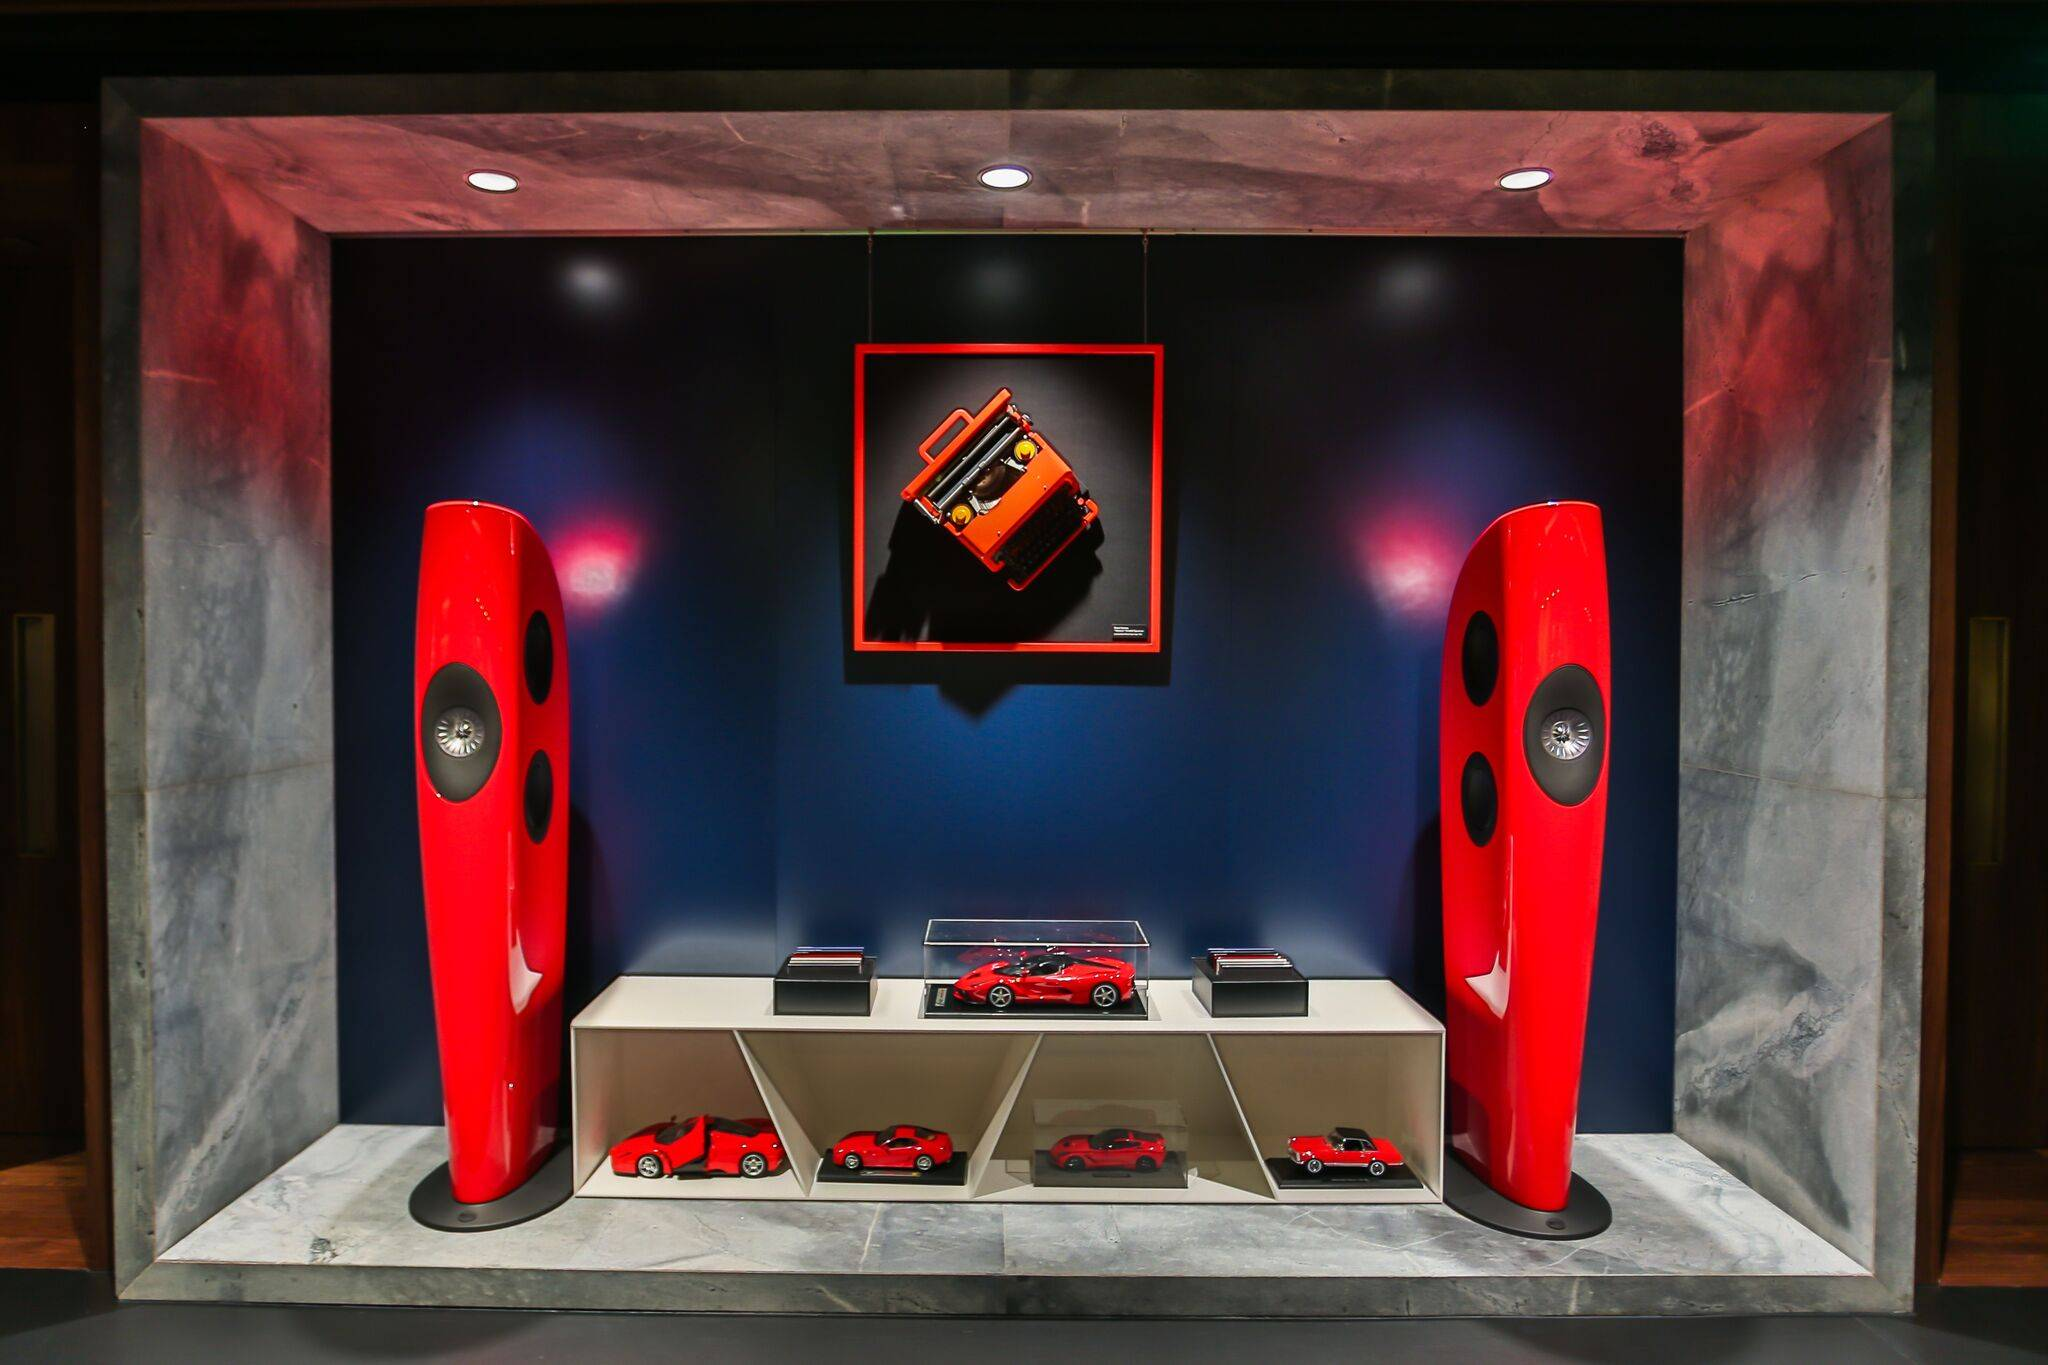 KEF - Obsessed with High Resolution - International – KEF International